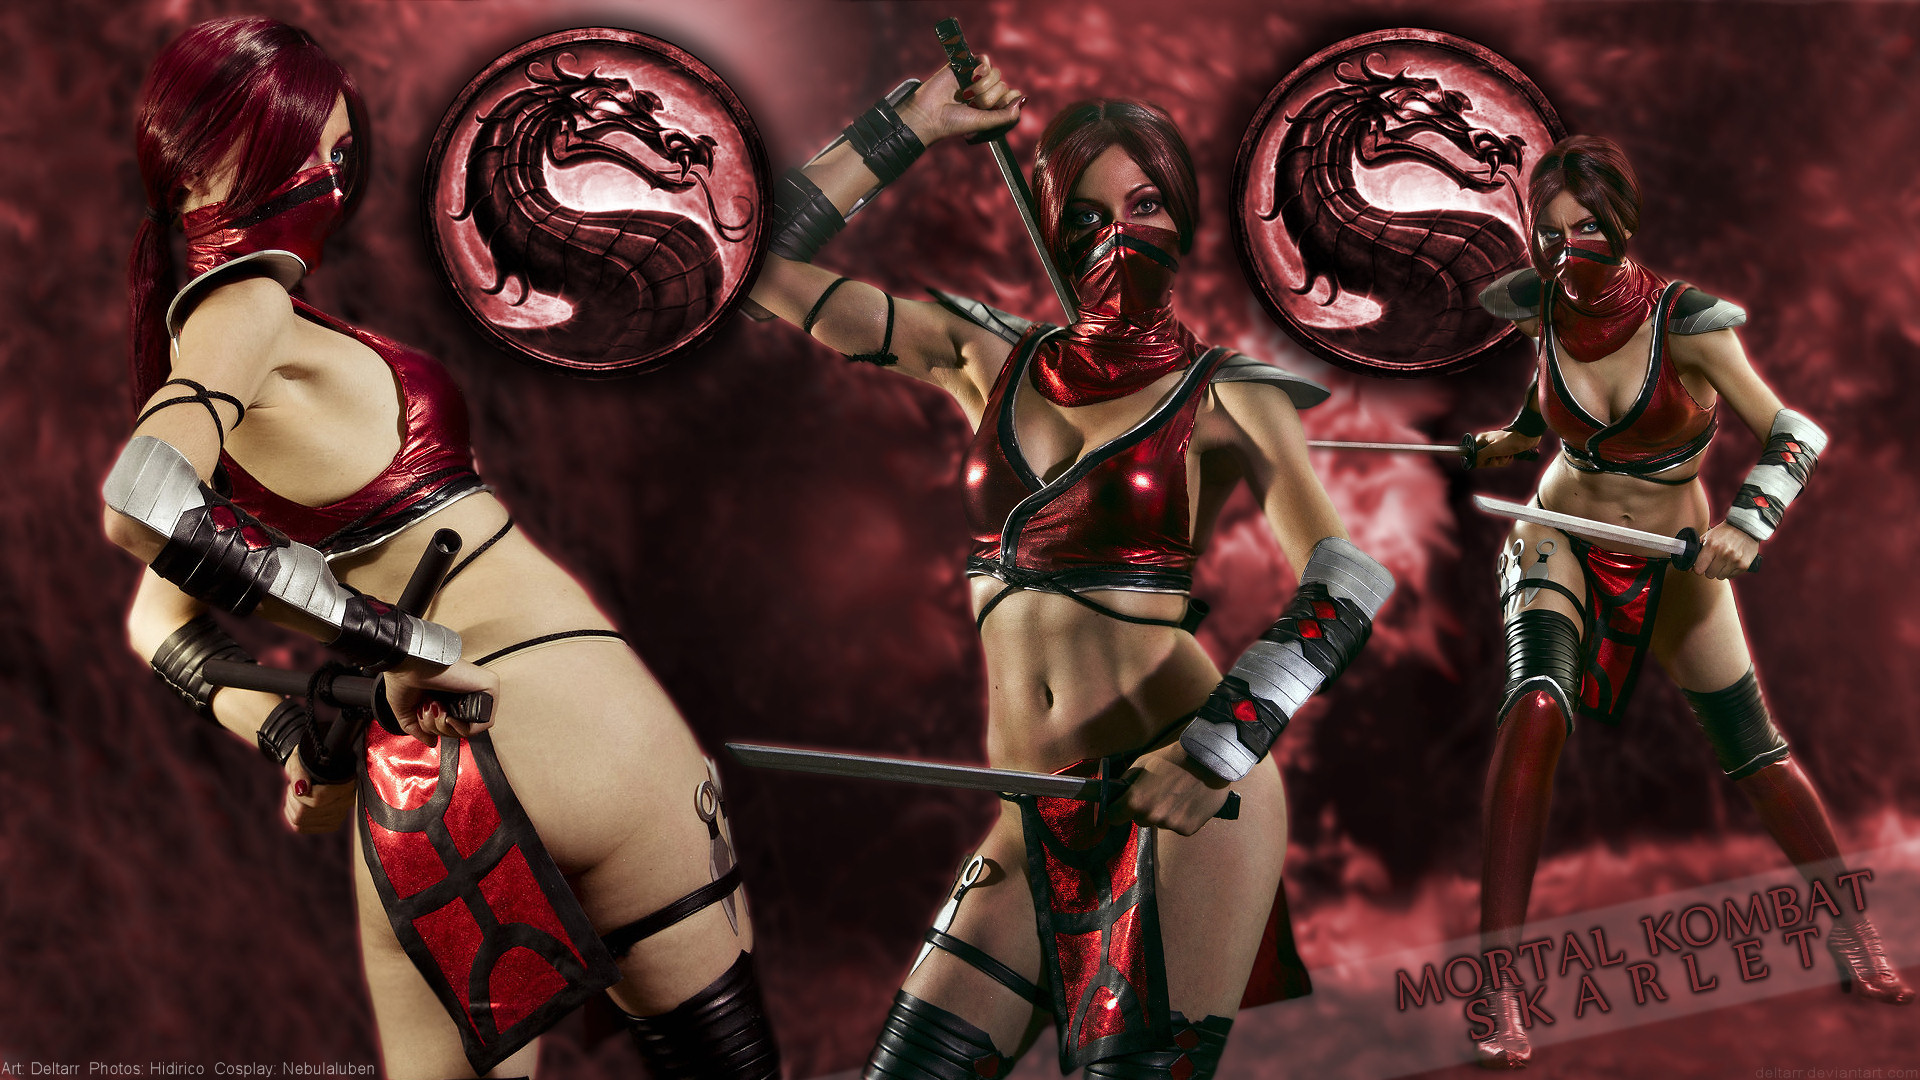 Nebulaluben as Skarlet (Mortal Kombat) by Deltarr